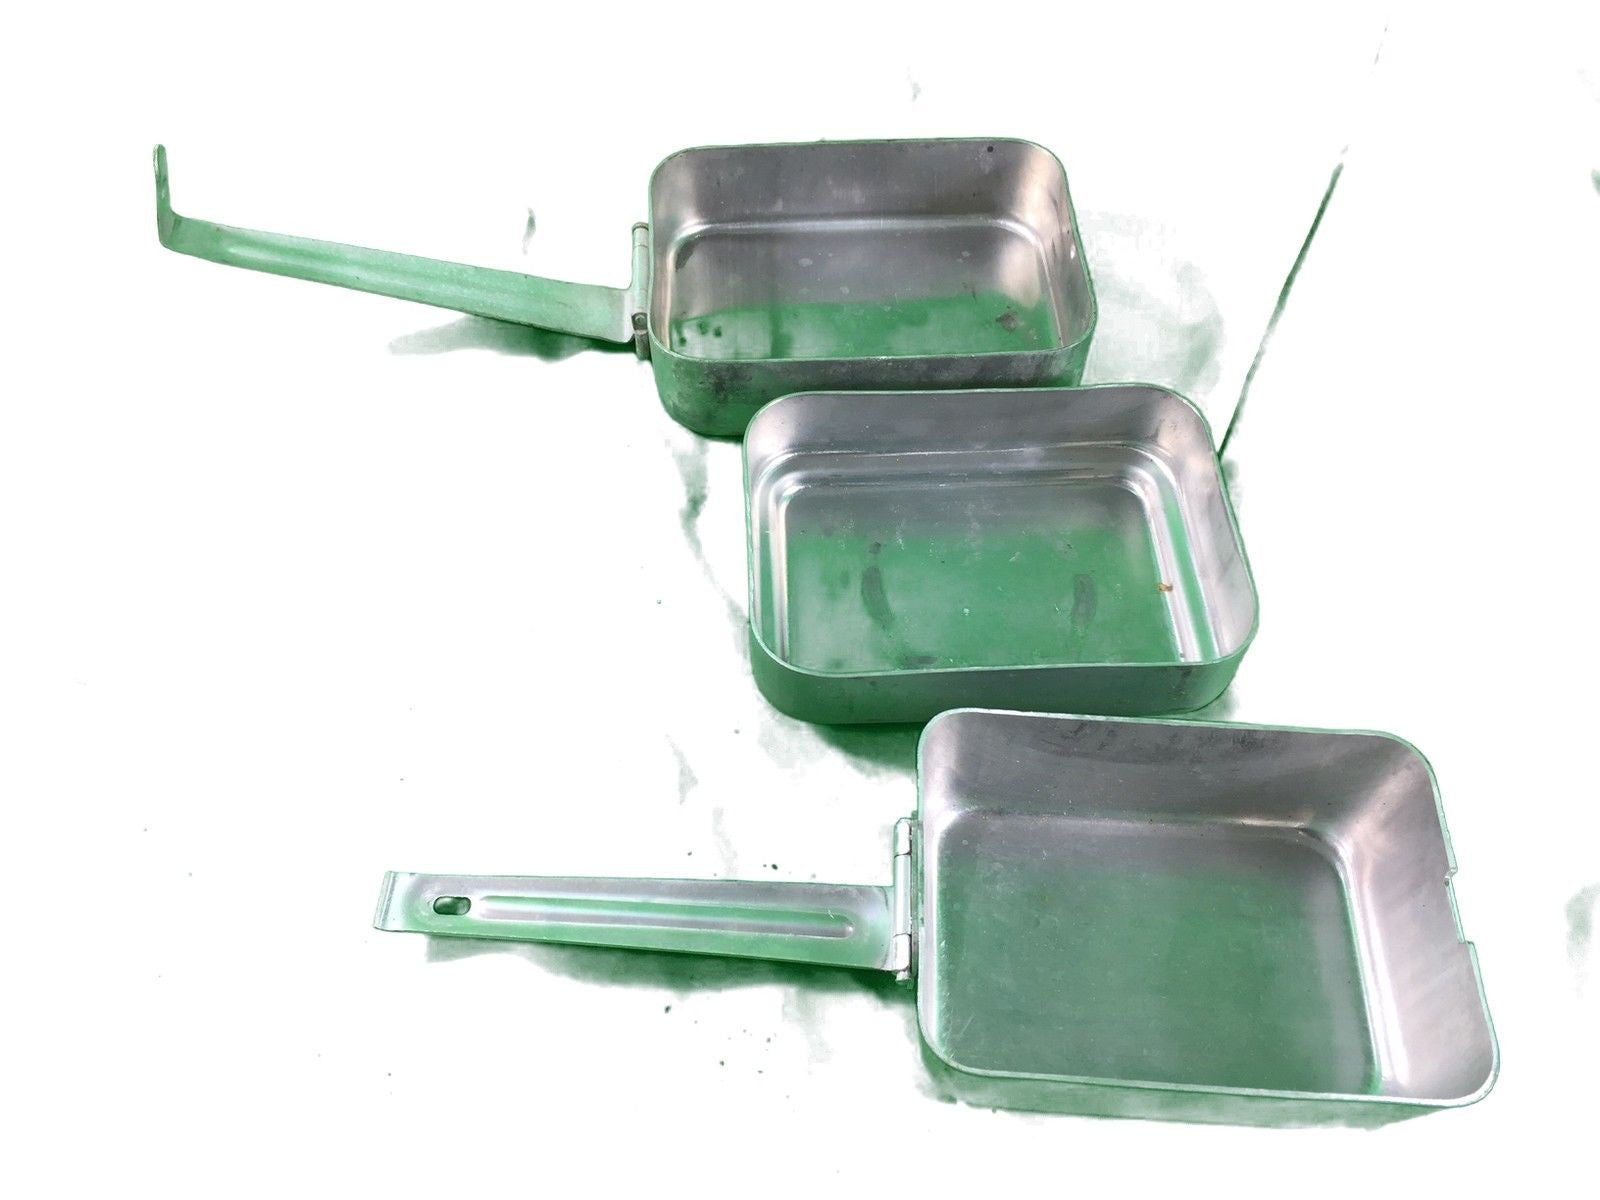 French army surplus 3 piece field canteen set cooking aluminium compact